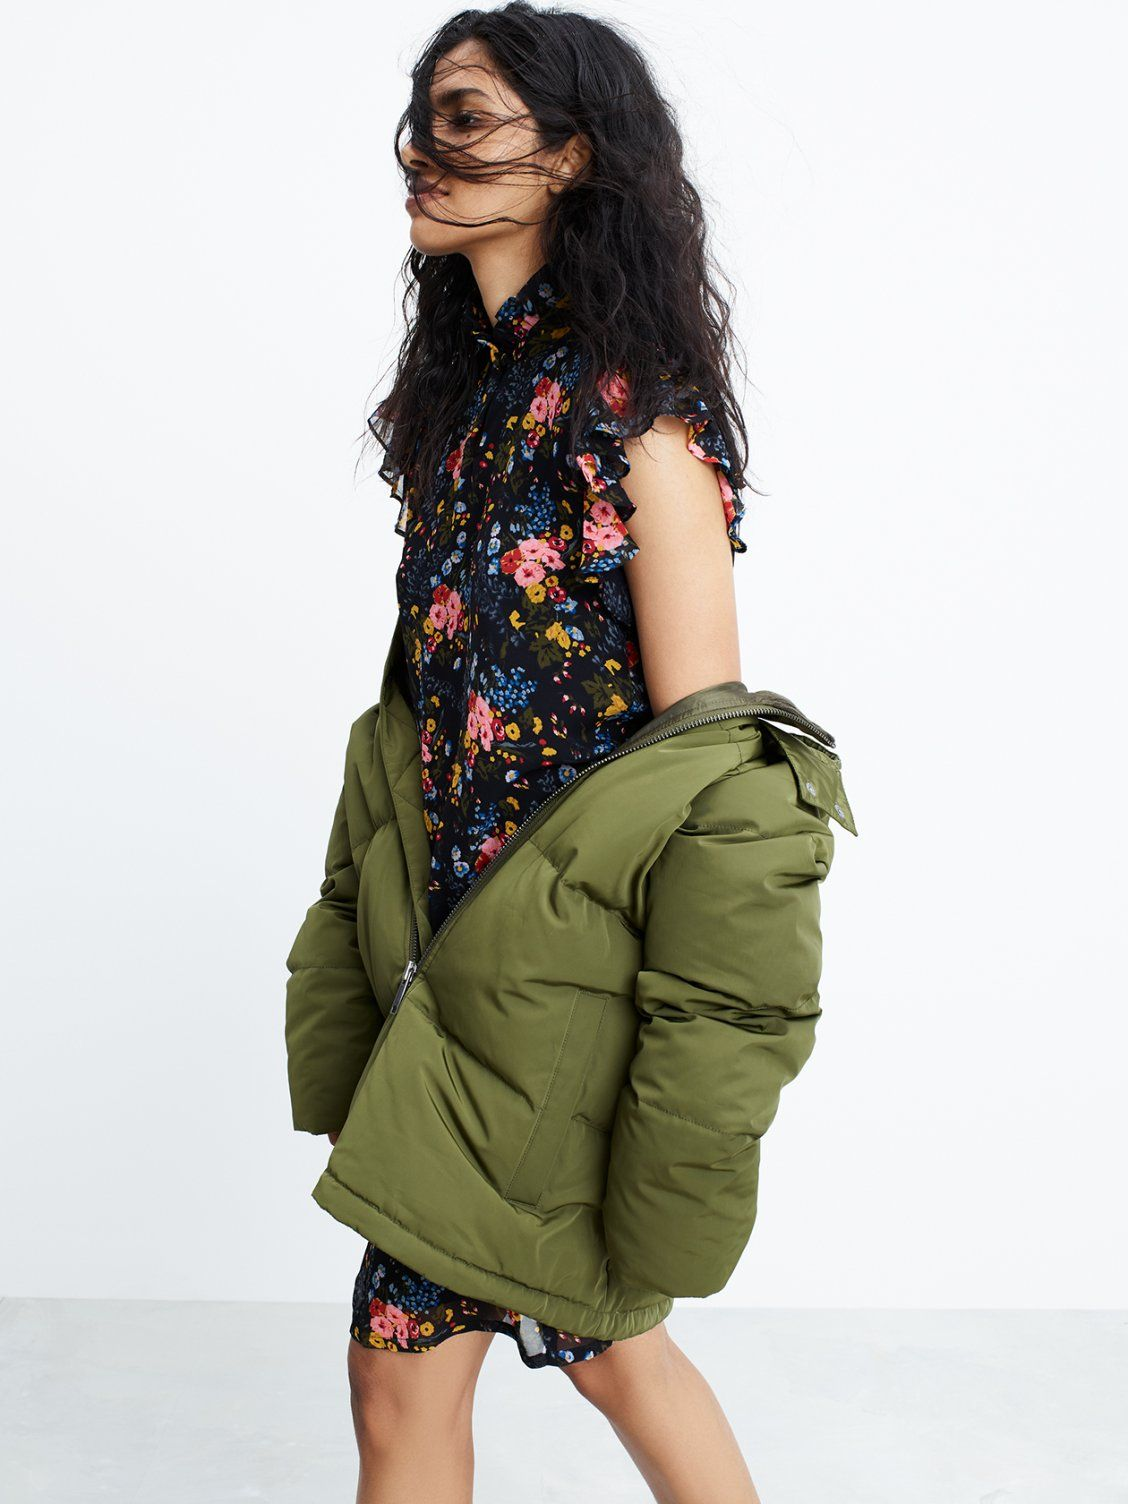 a0bc18b49db madewell x no.6 silk beacon dress worn with the quilted down puffer ...